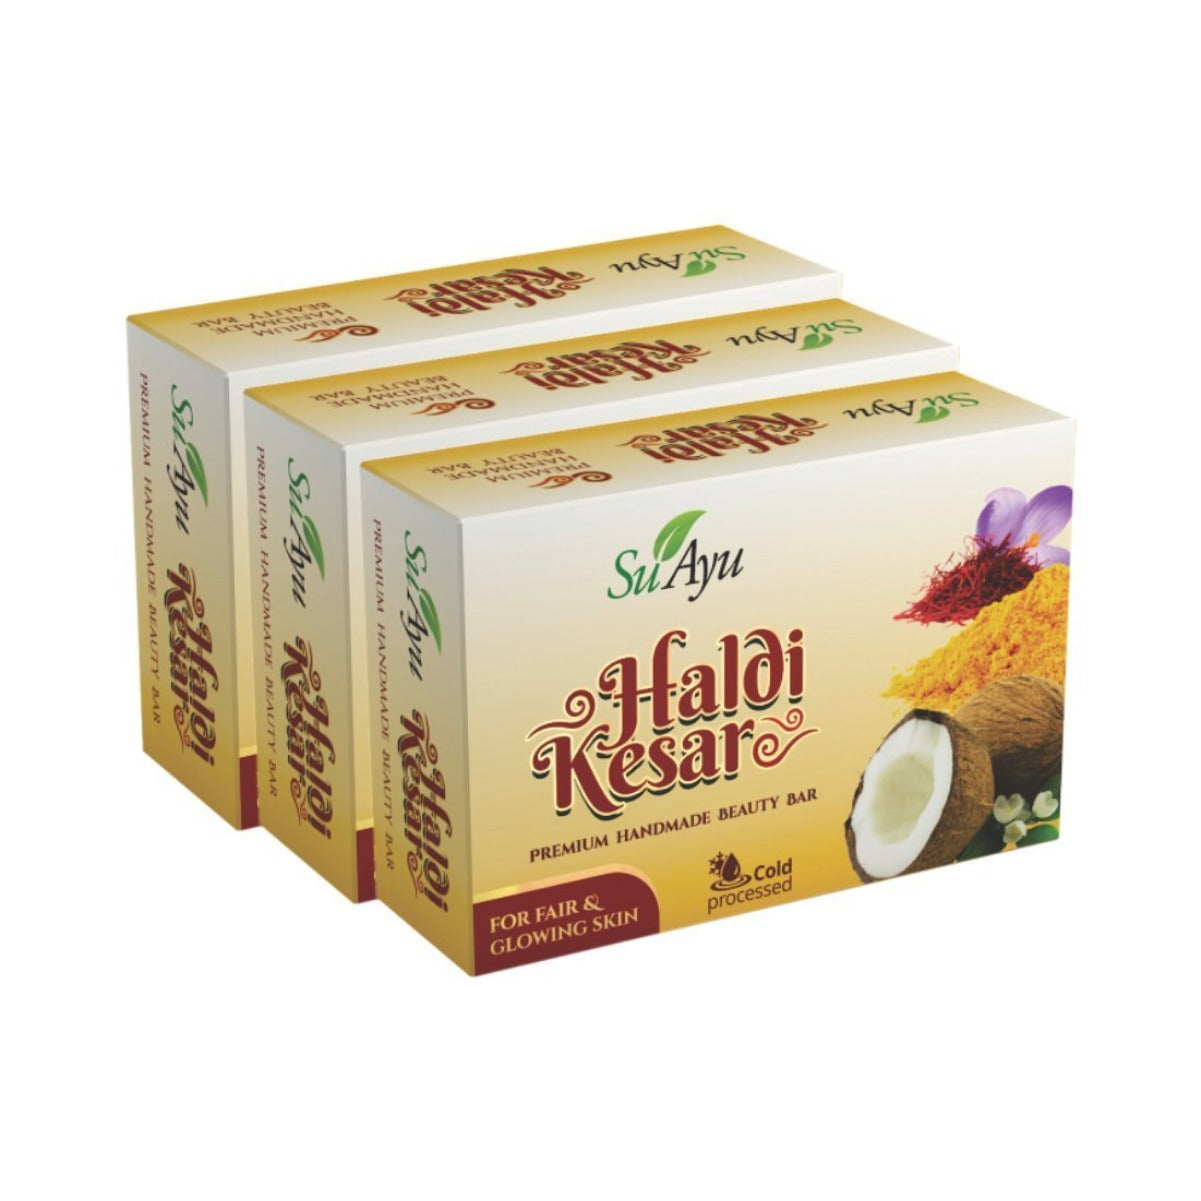 SuAyu Haldi Kesar Soap | (Pack of 3, 5, 10, 20) at lowest price